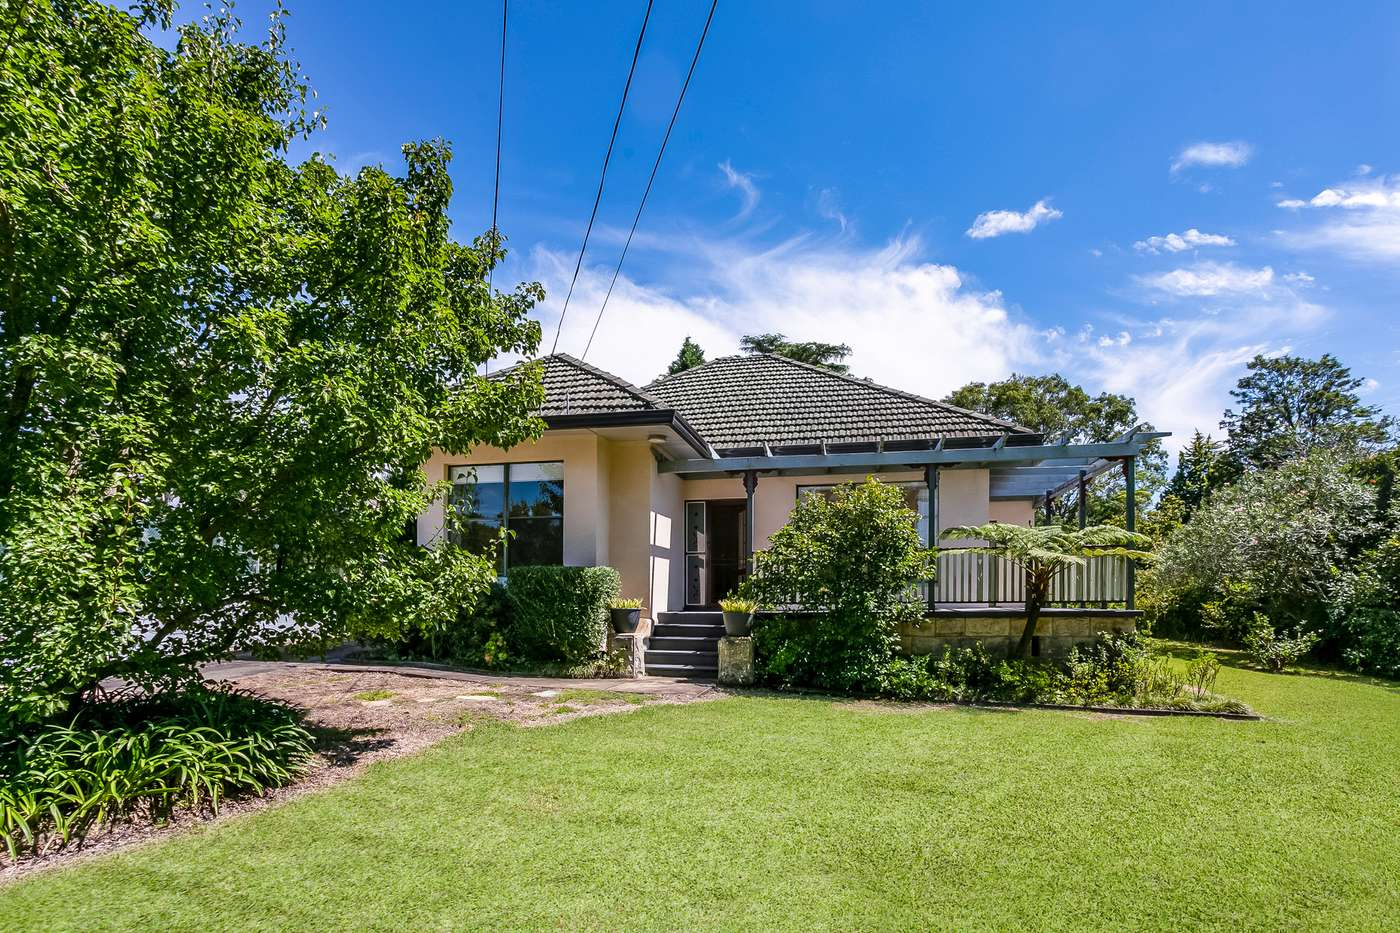 Main view of Homely house listing, 44 Lord Street, Roseville, NSW 2069